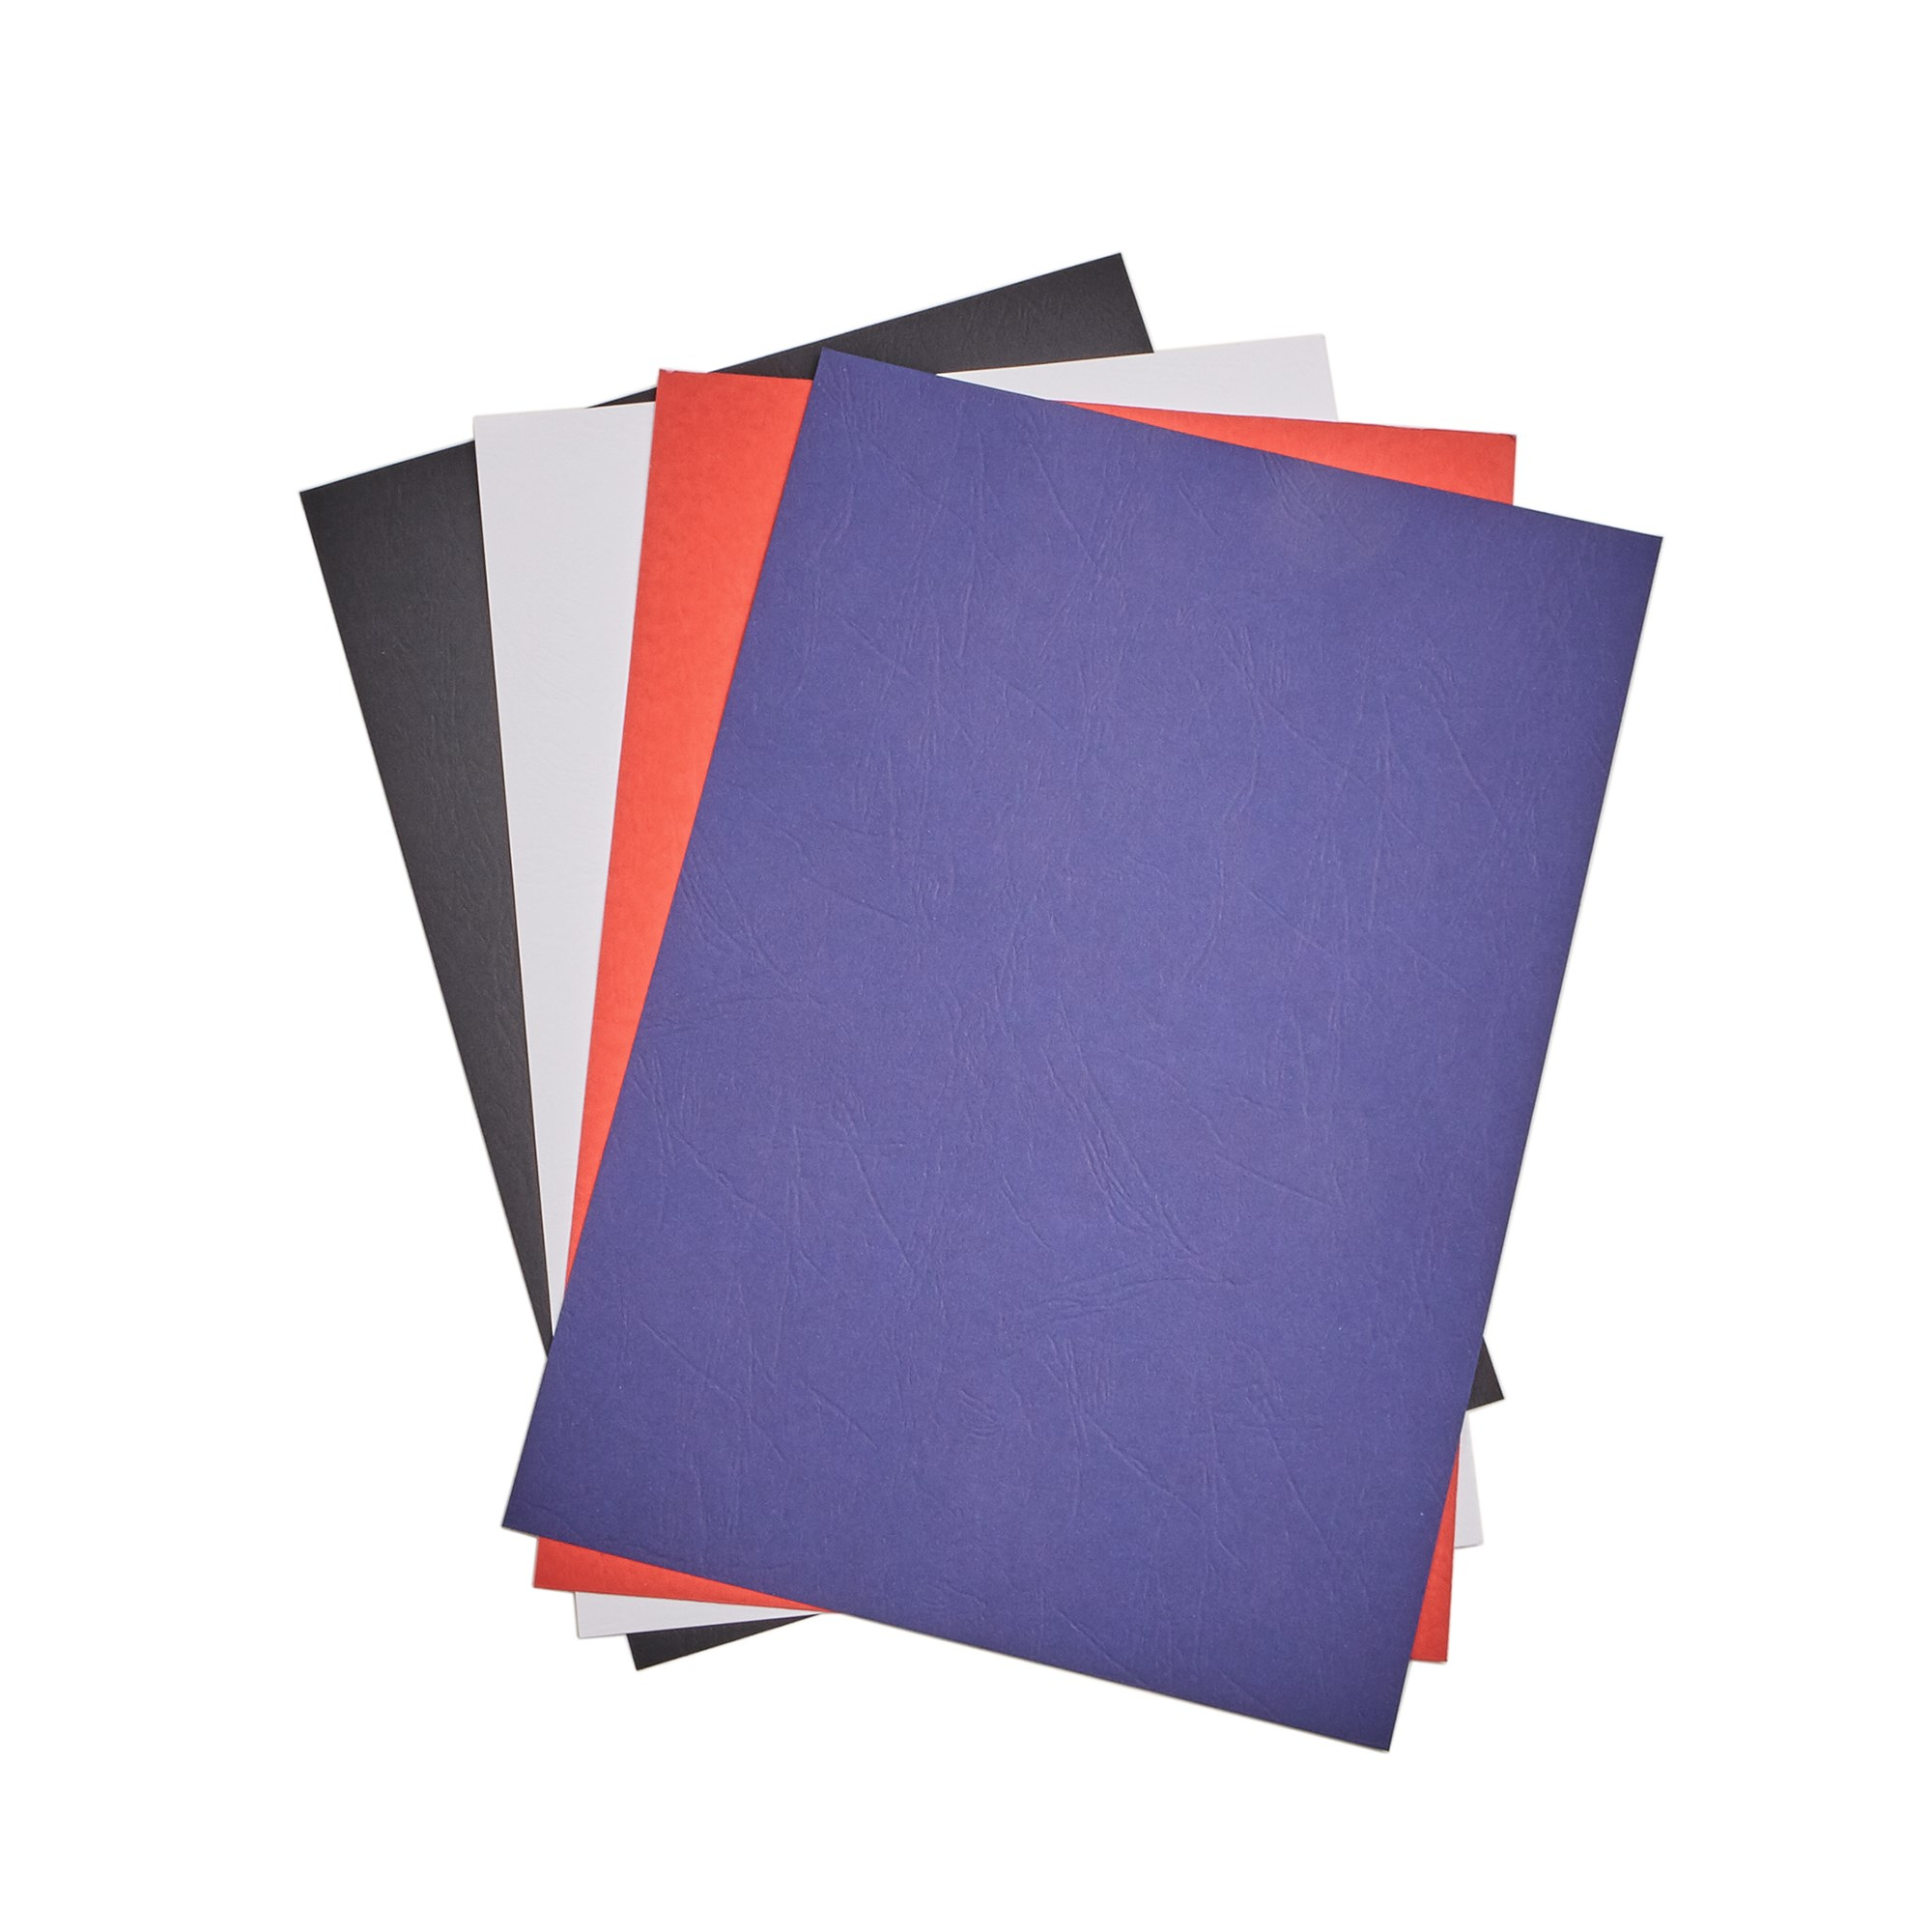 Leathergrain Binding Covers - Blue - Box of 100